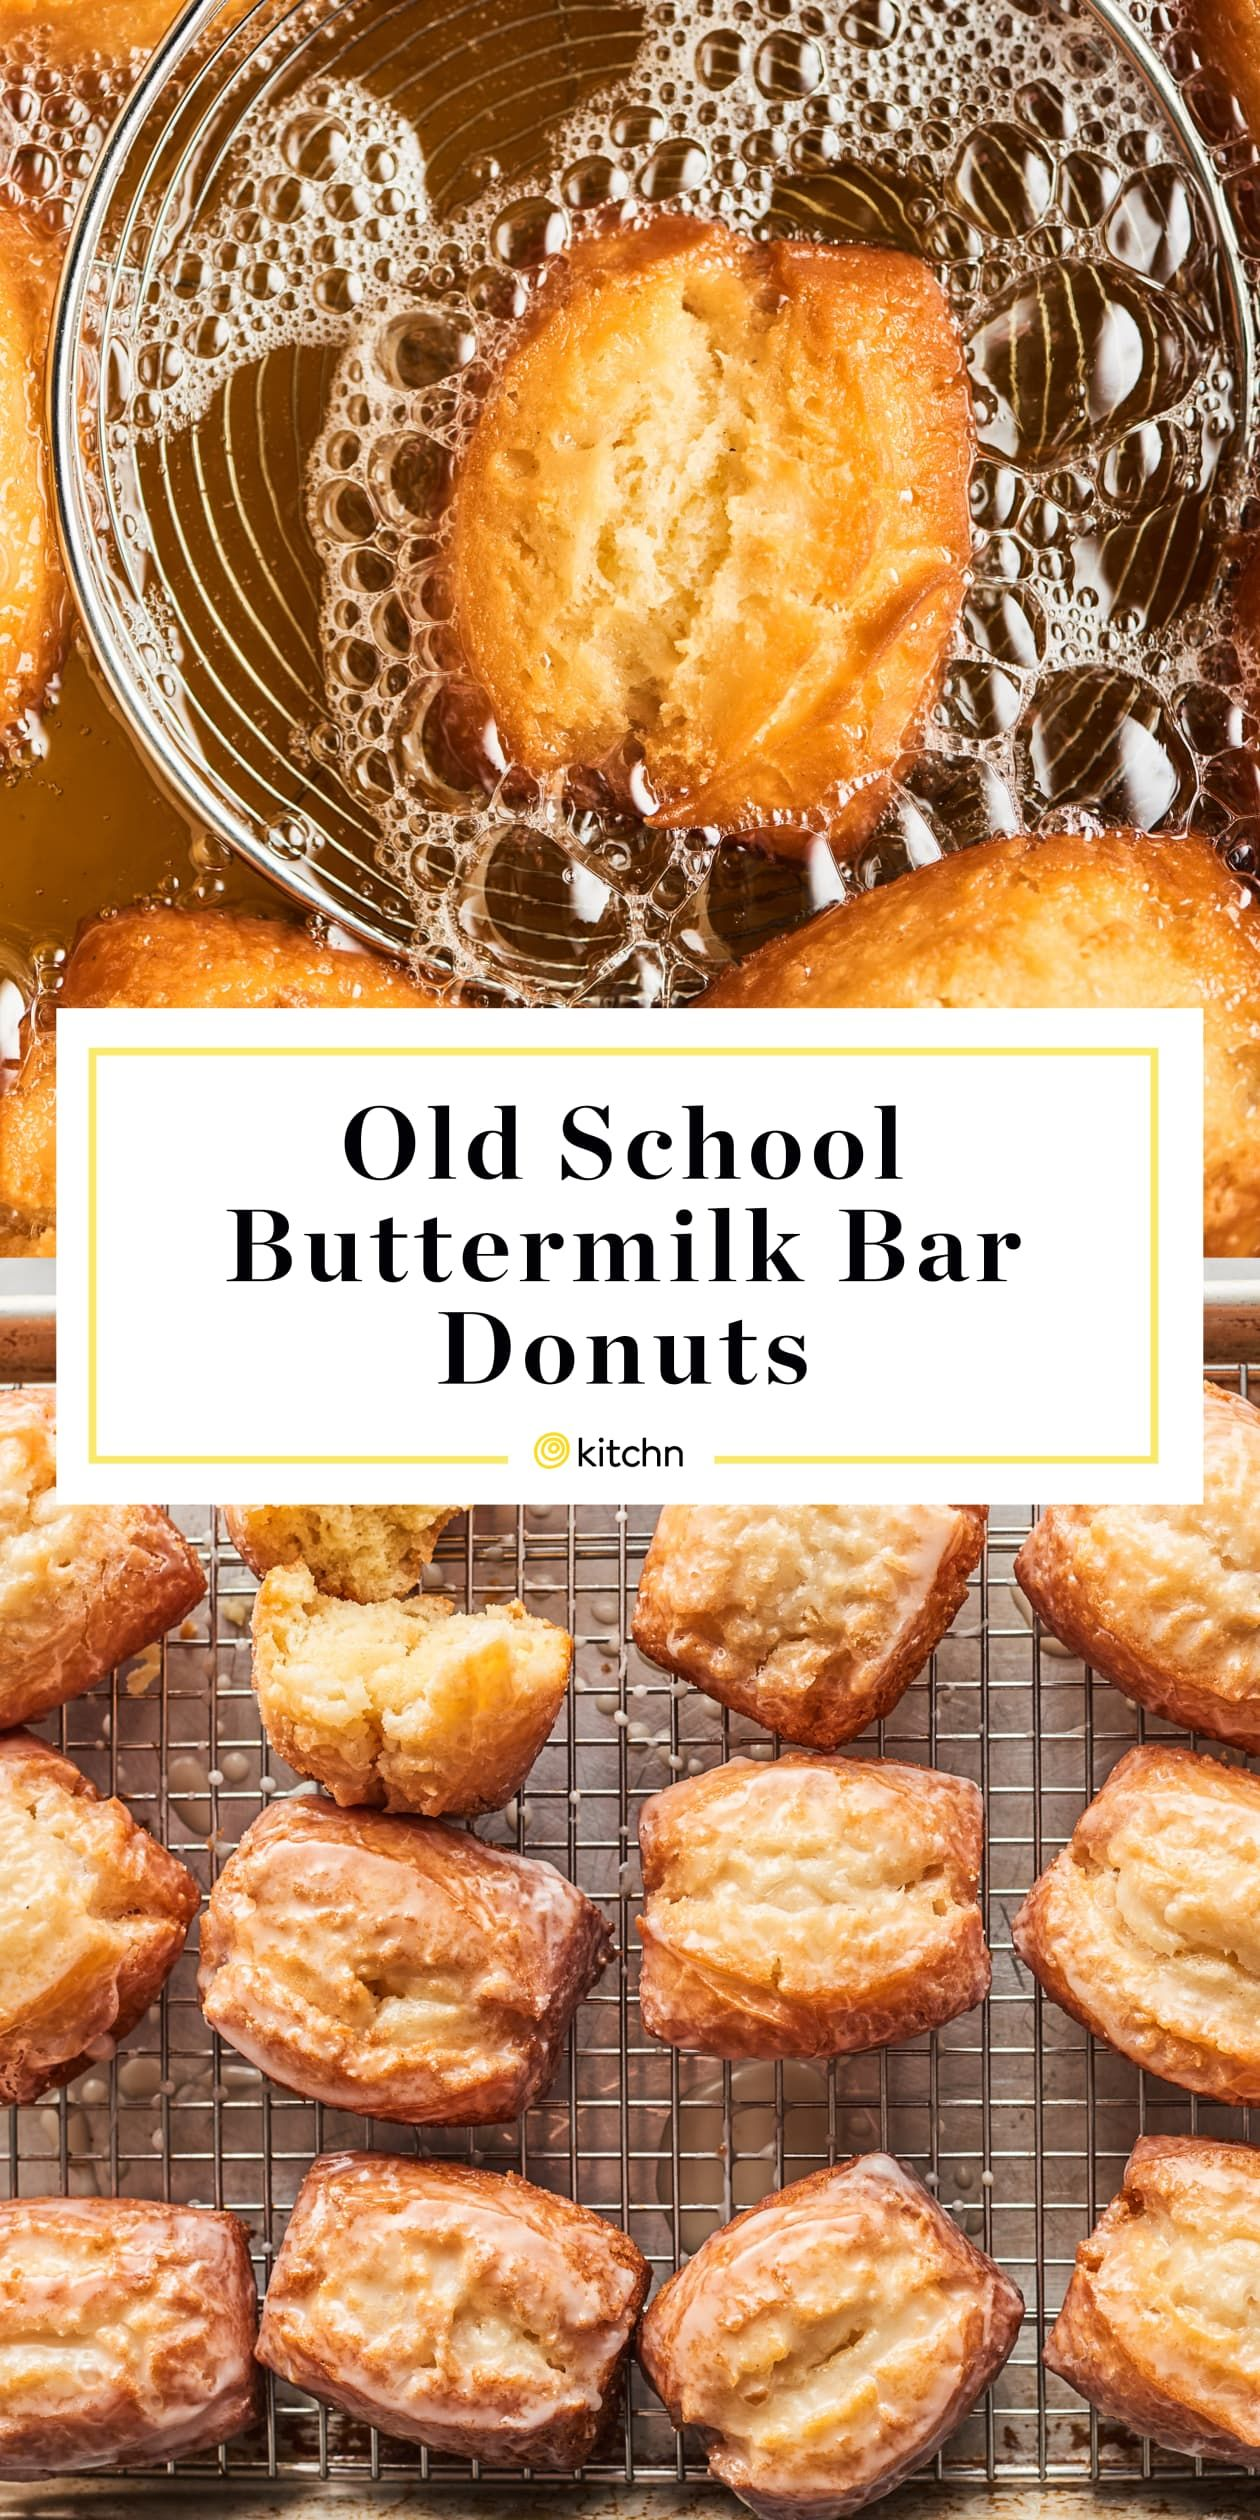 Old Fashioned Buttermilk Bar Donuts Are Crispy Fluffy Perfection Recipe In 2020 Buttermilk Bar Donut Recipe Donut Recipes Recipes